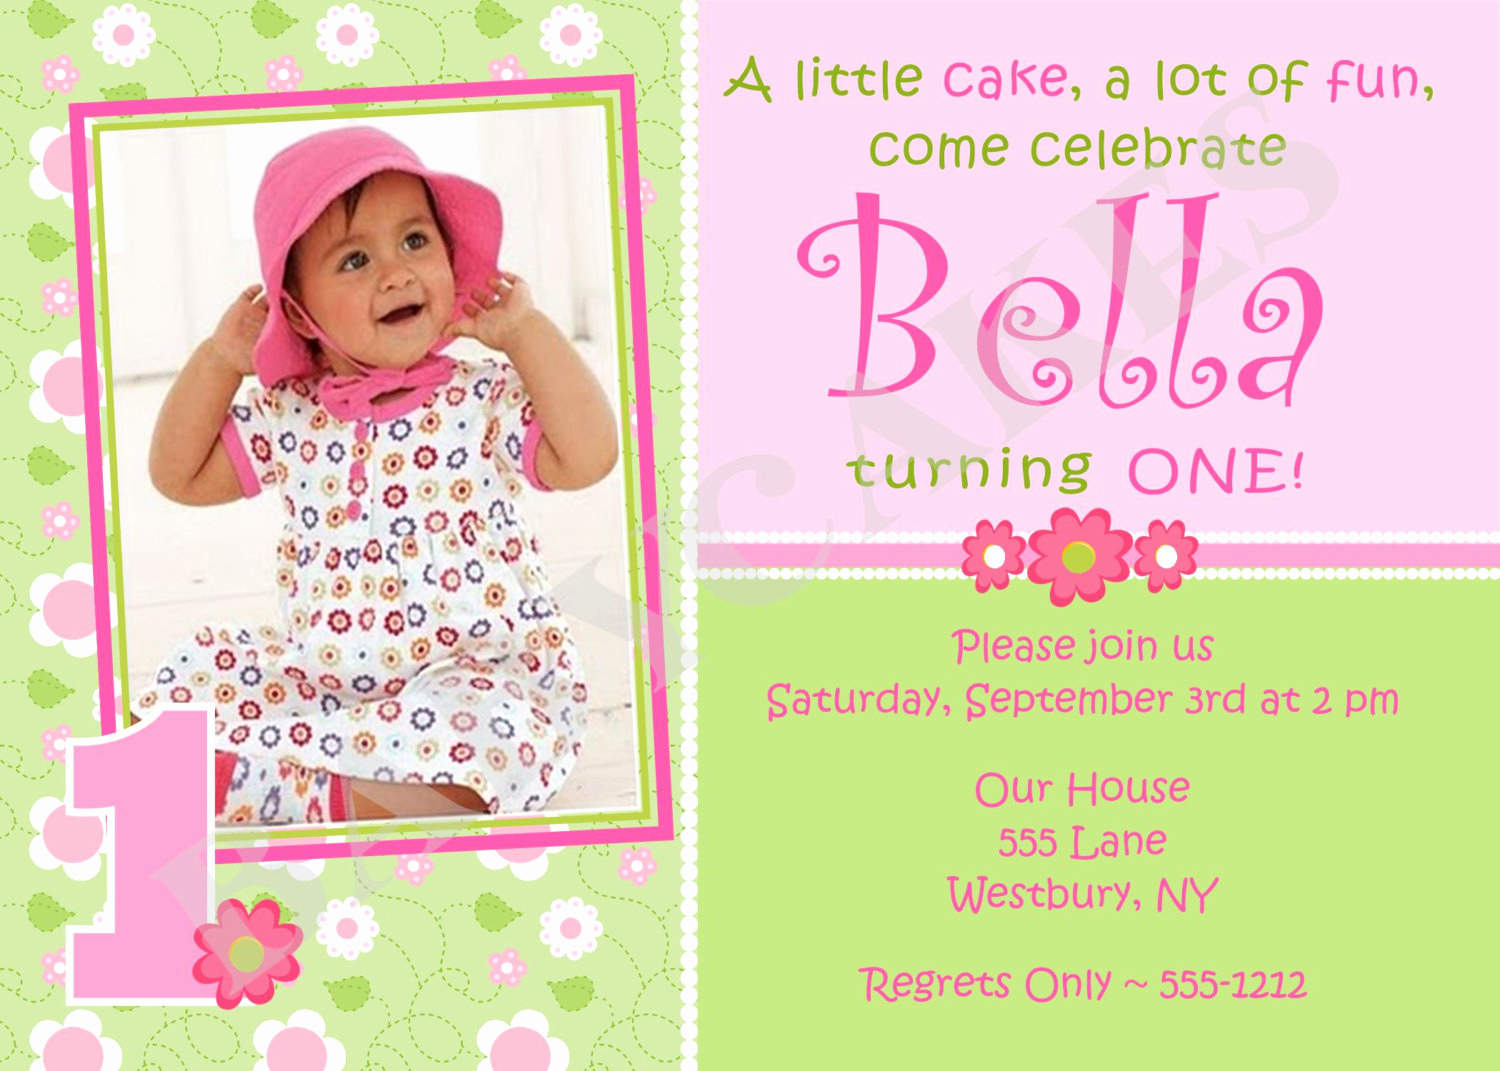 Baby Girl First Birthday Invitation Lovely 1st Birthday Invitations Girl Free Template Baby Girl S